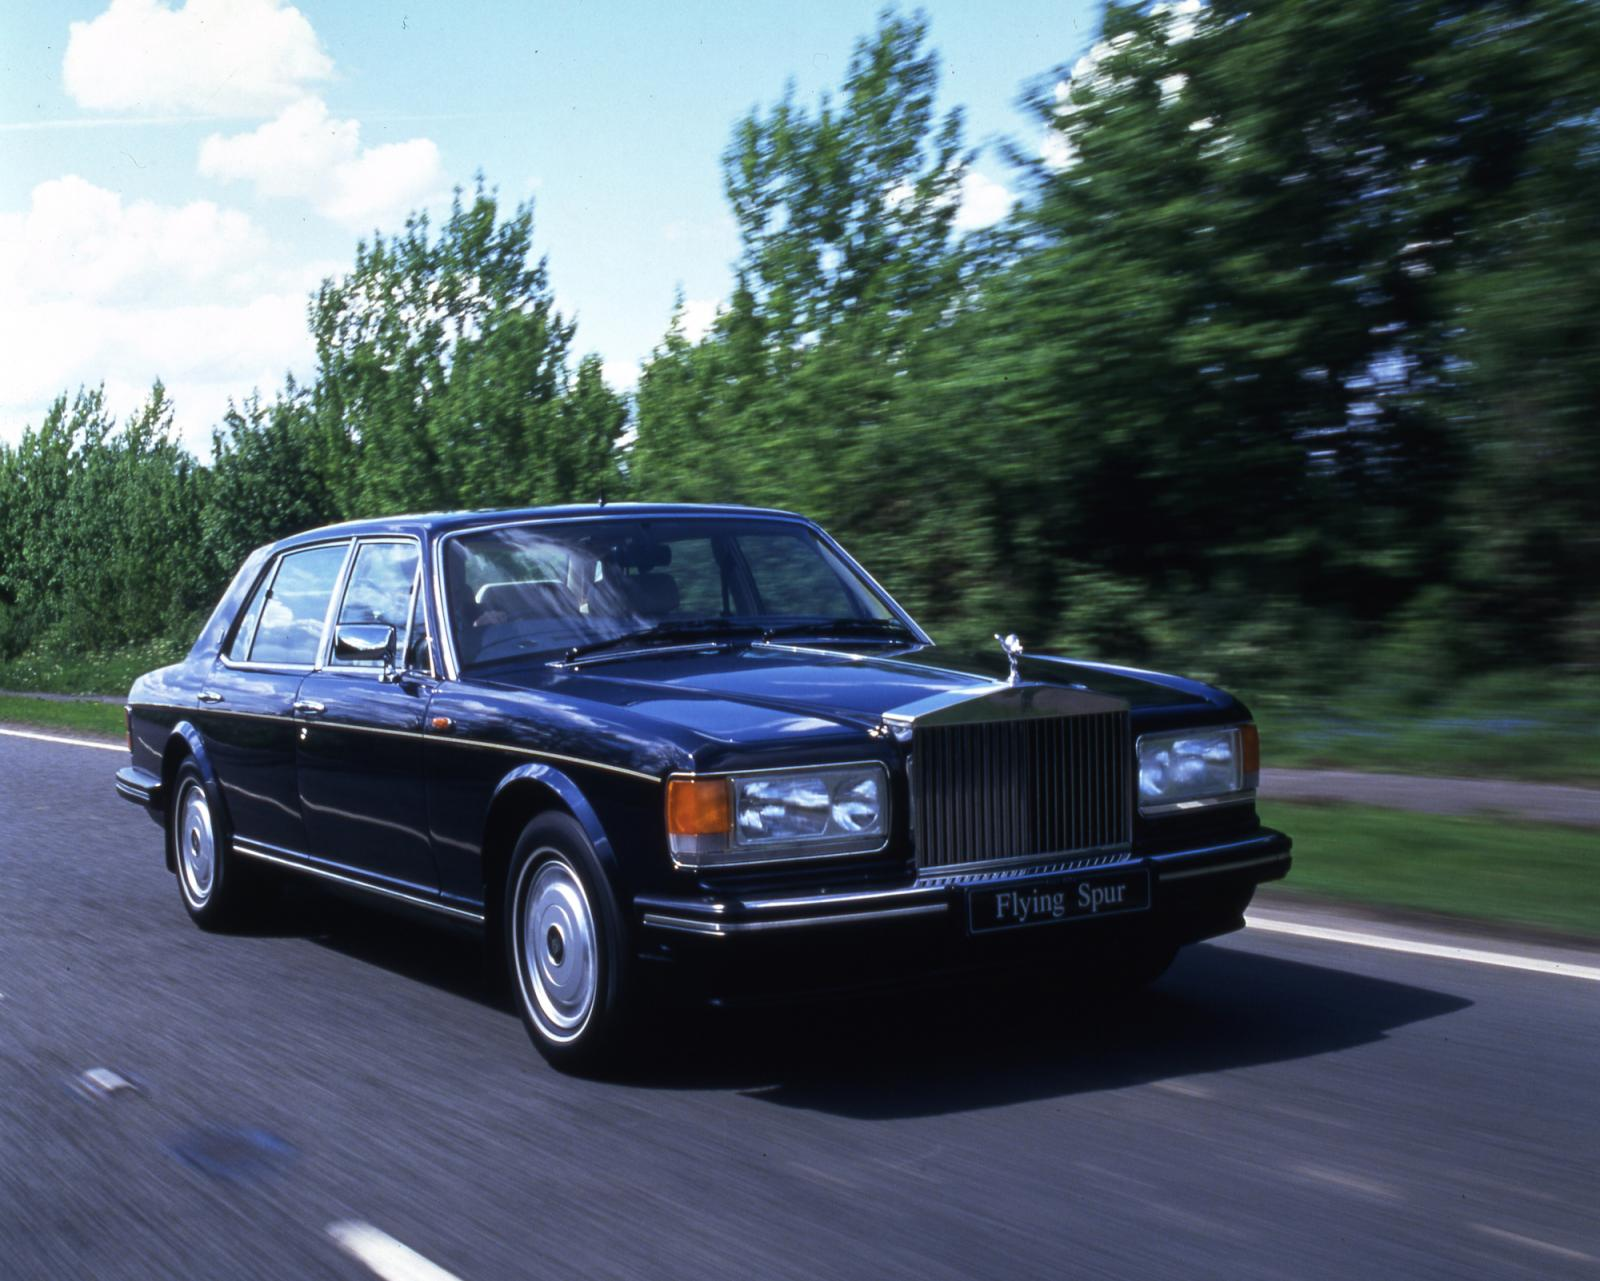 rolls-royce-flying-spur